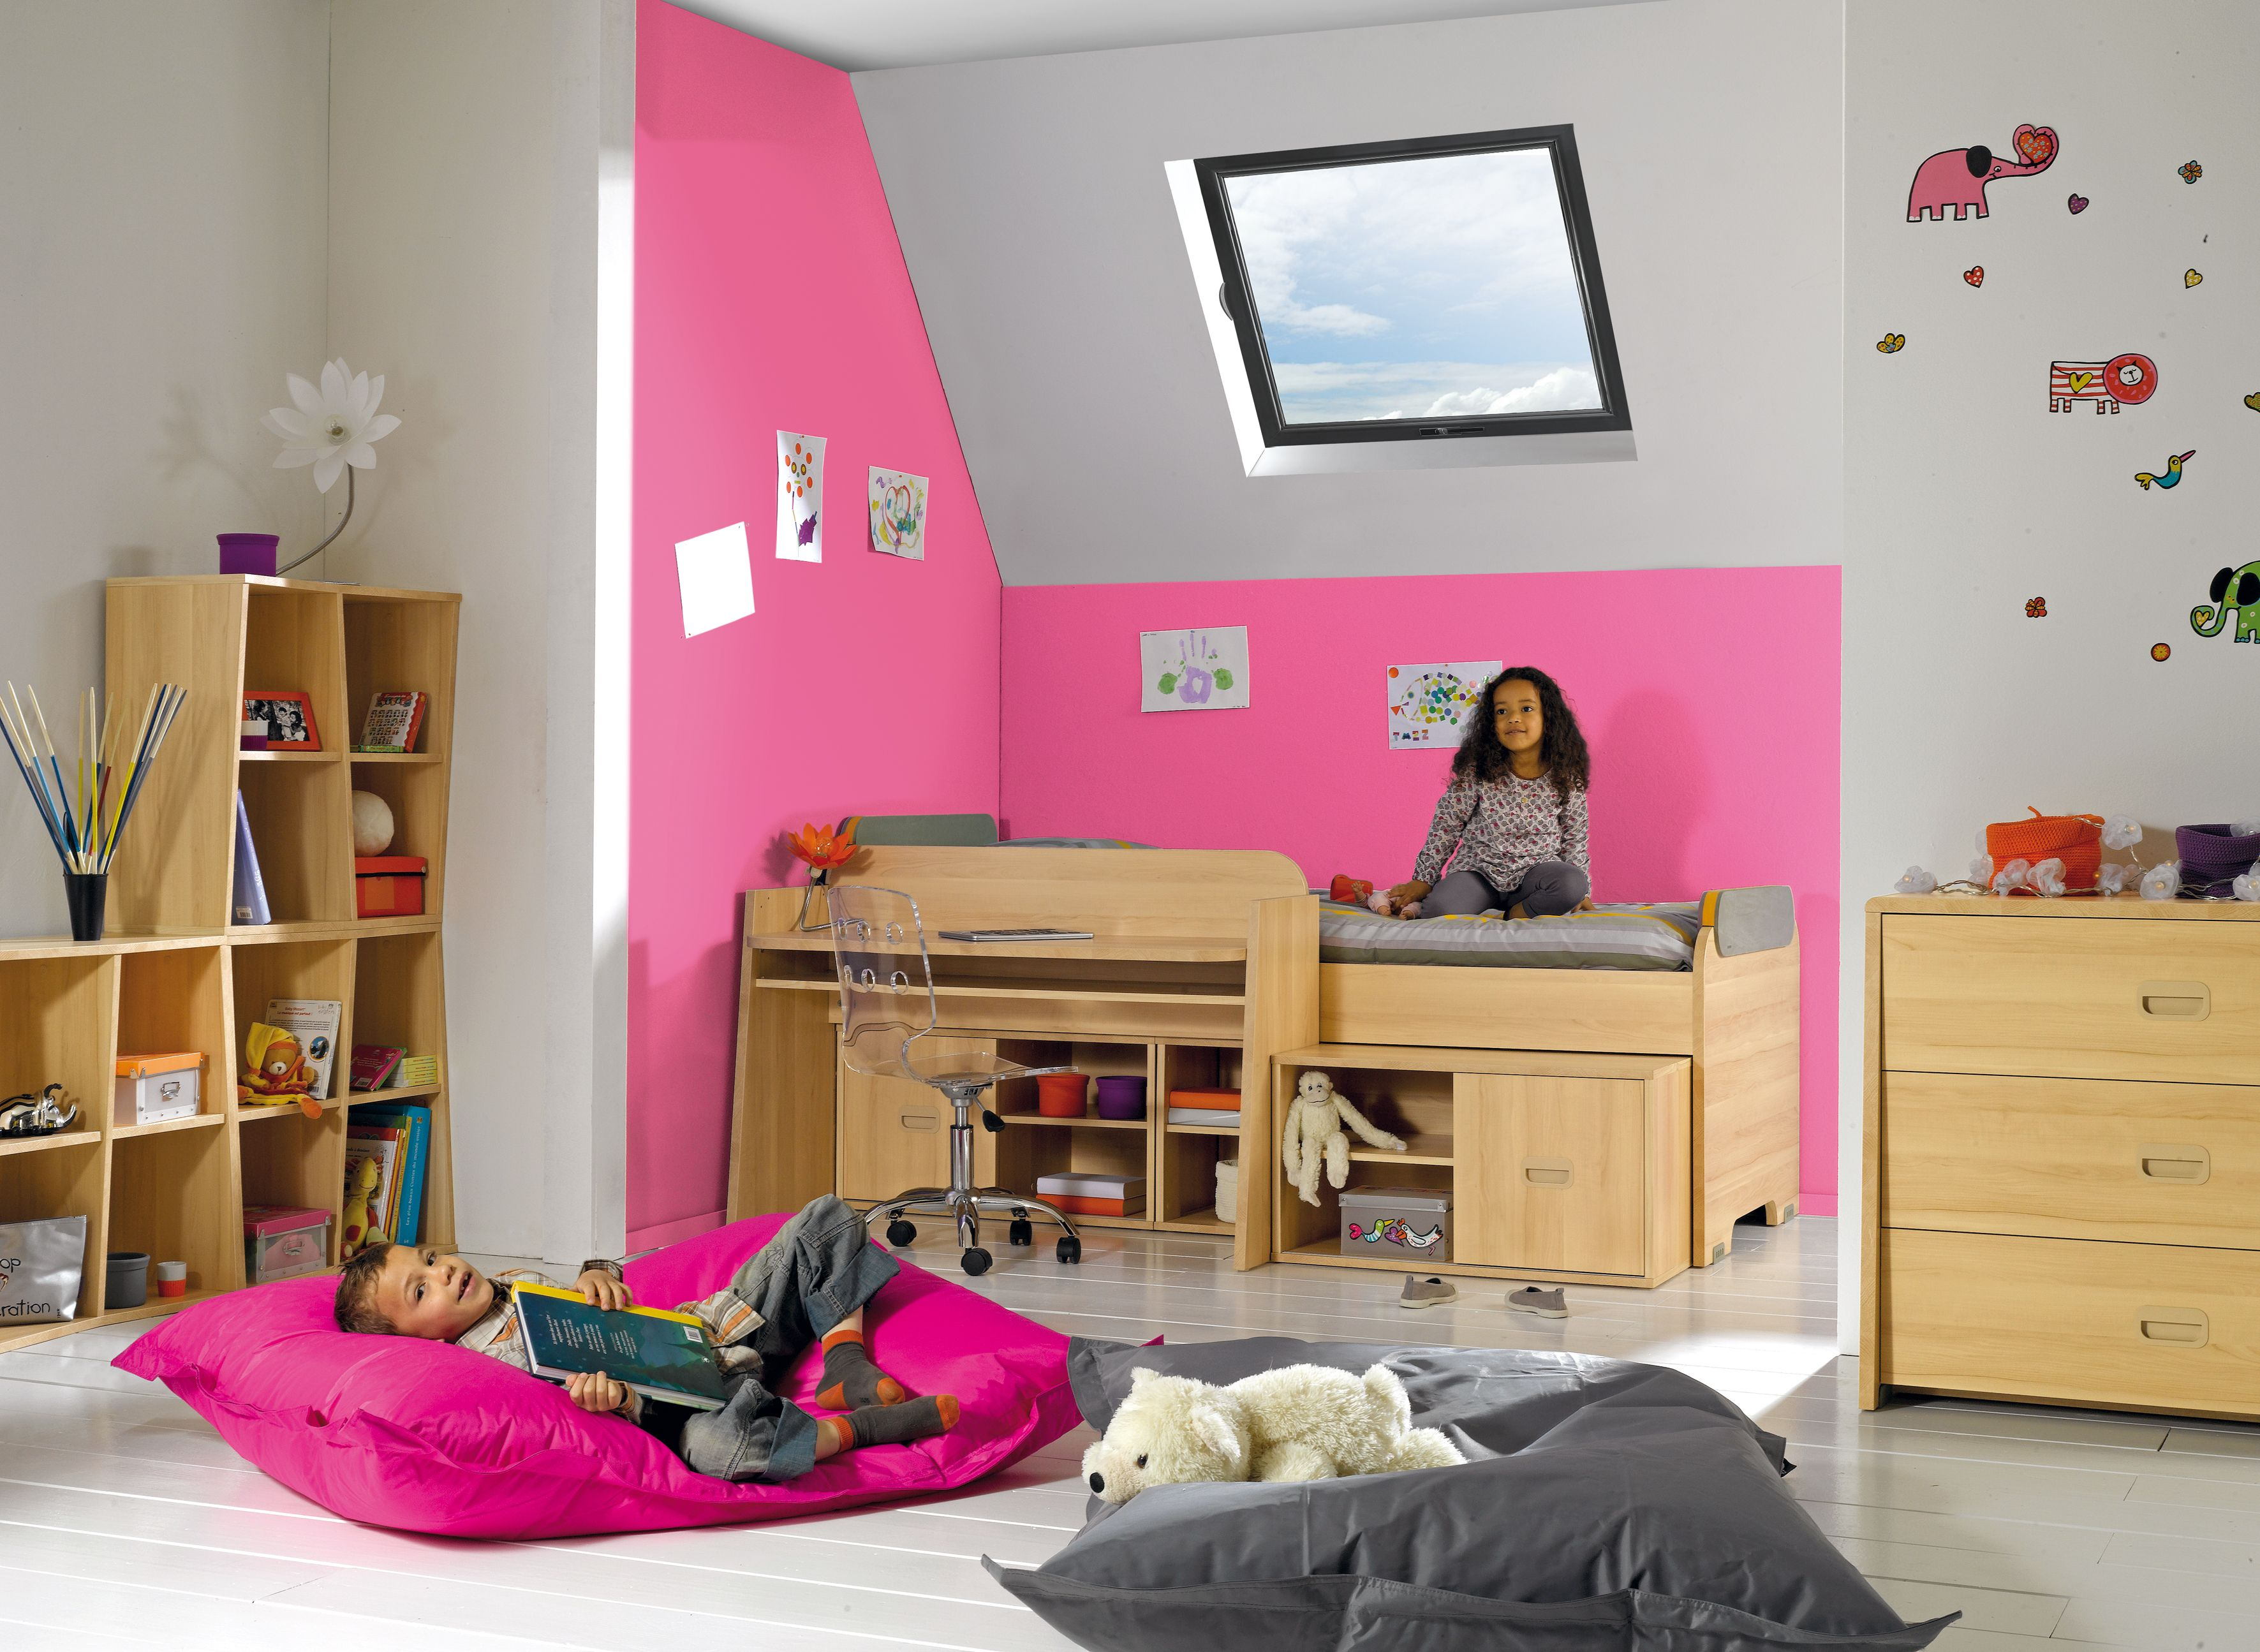 Savane Compact Bed, By Gautier Made In France Wwwgautierfr -